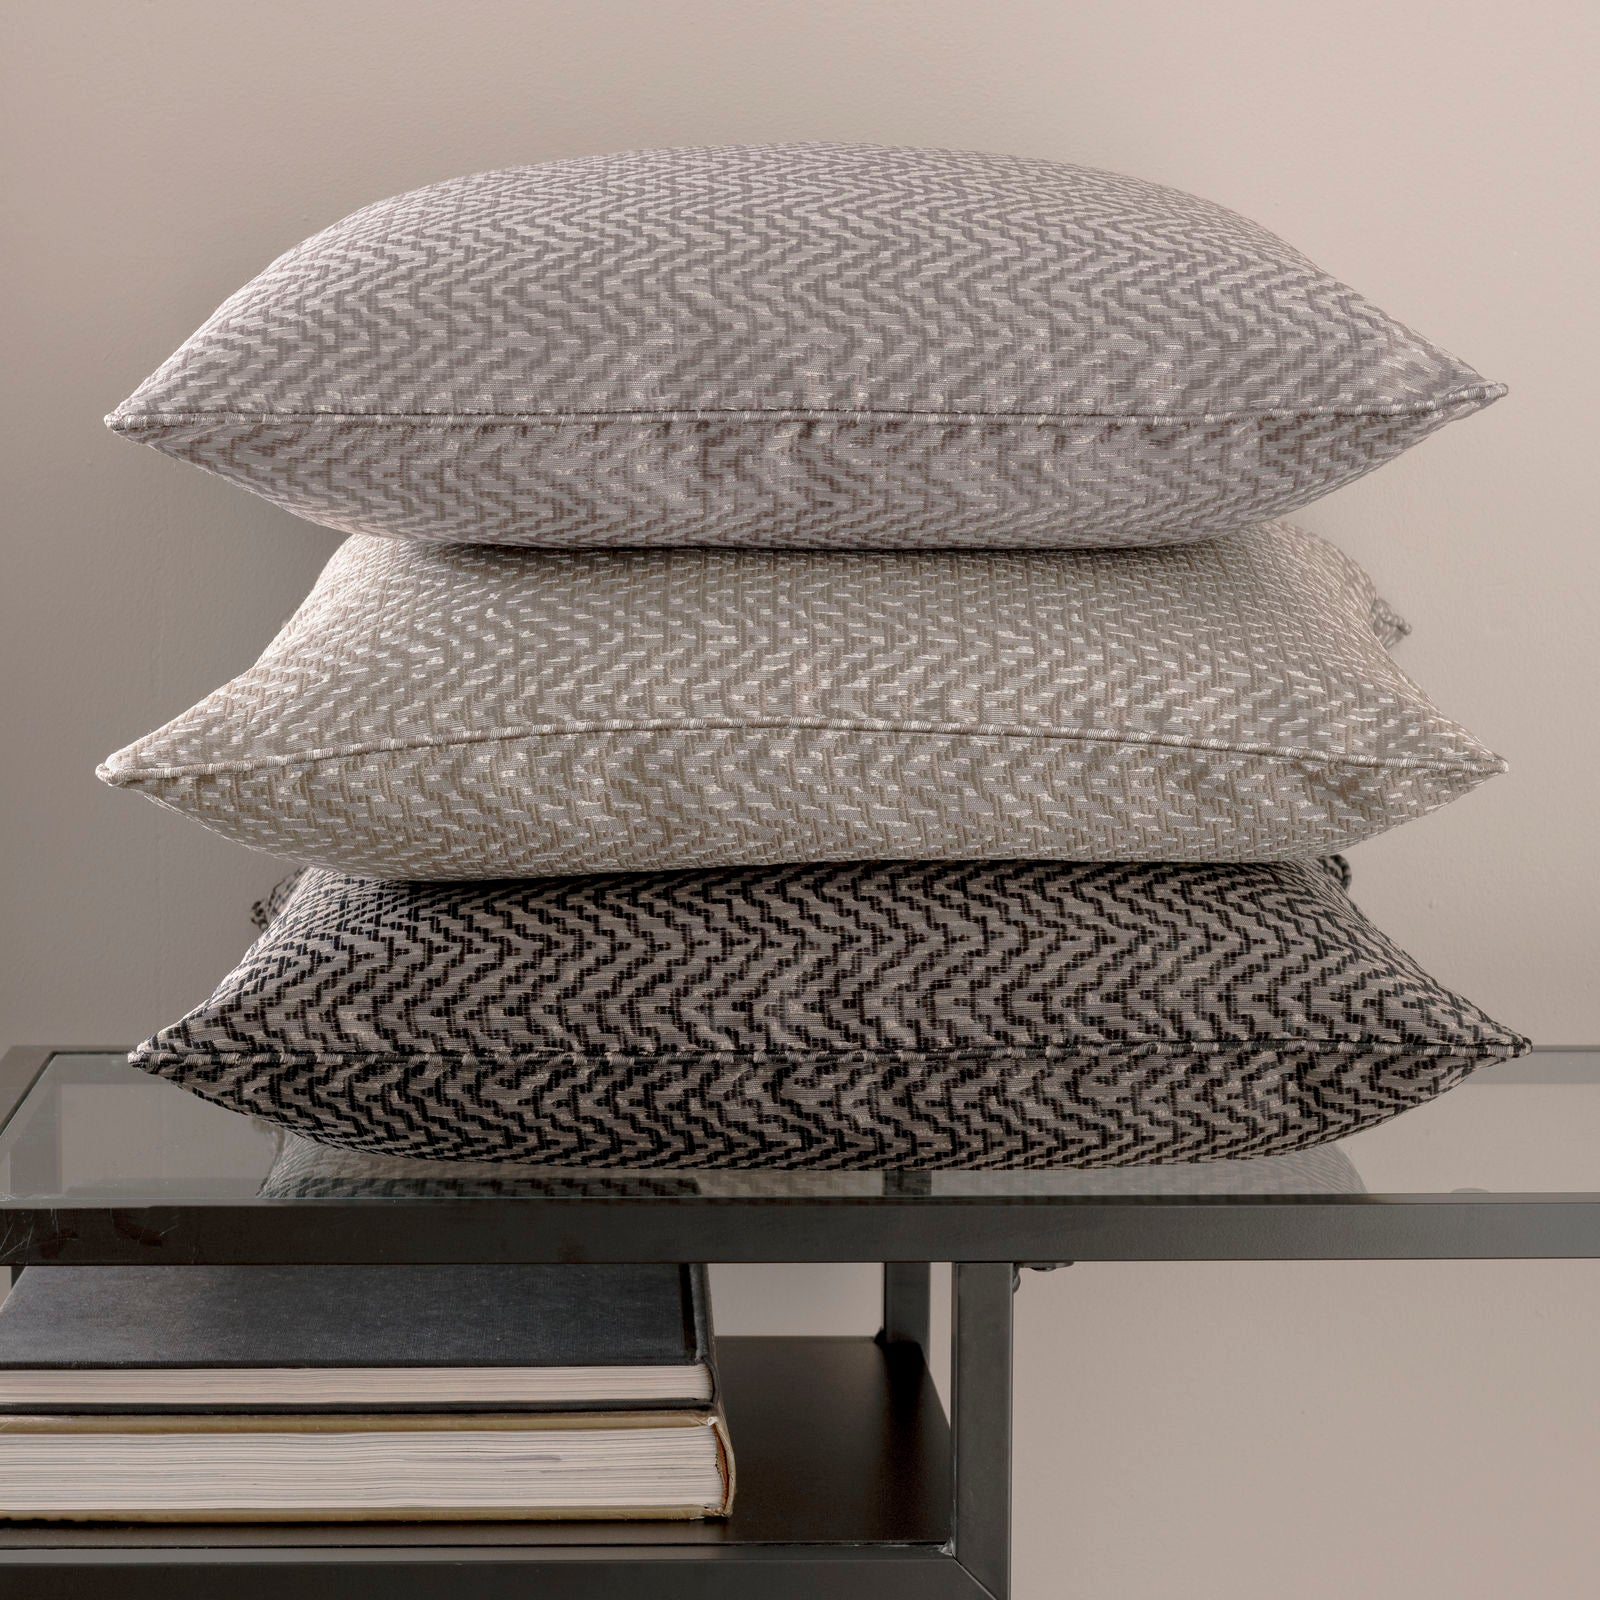 Clarke & Clarke Designer 'Verona' Cushion | Smoke Grey Two Tone Zig Zag Geometric Design